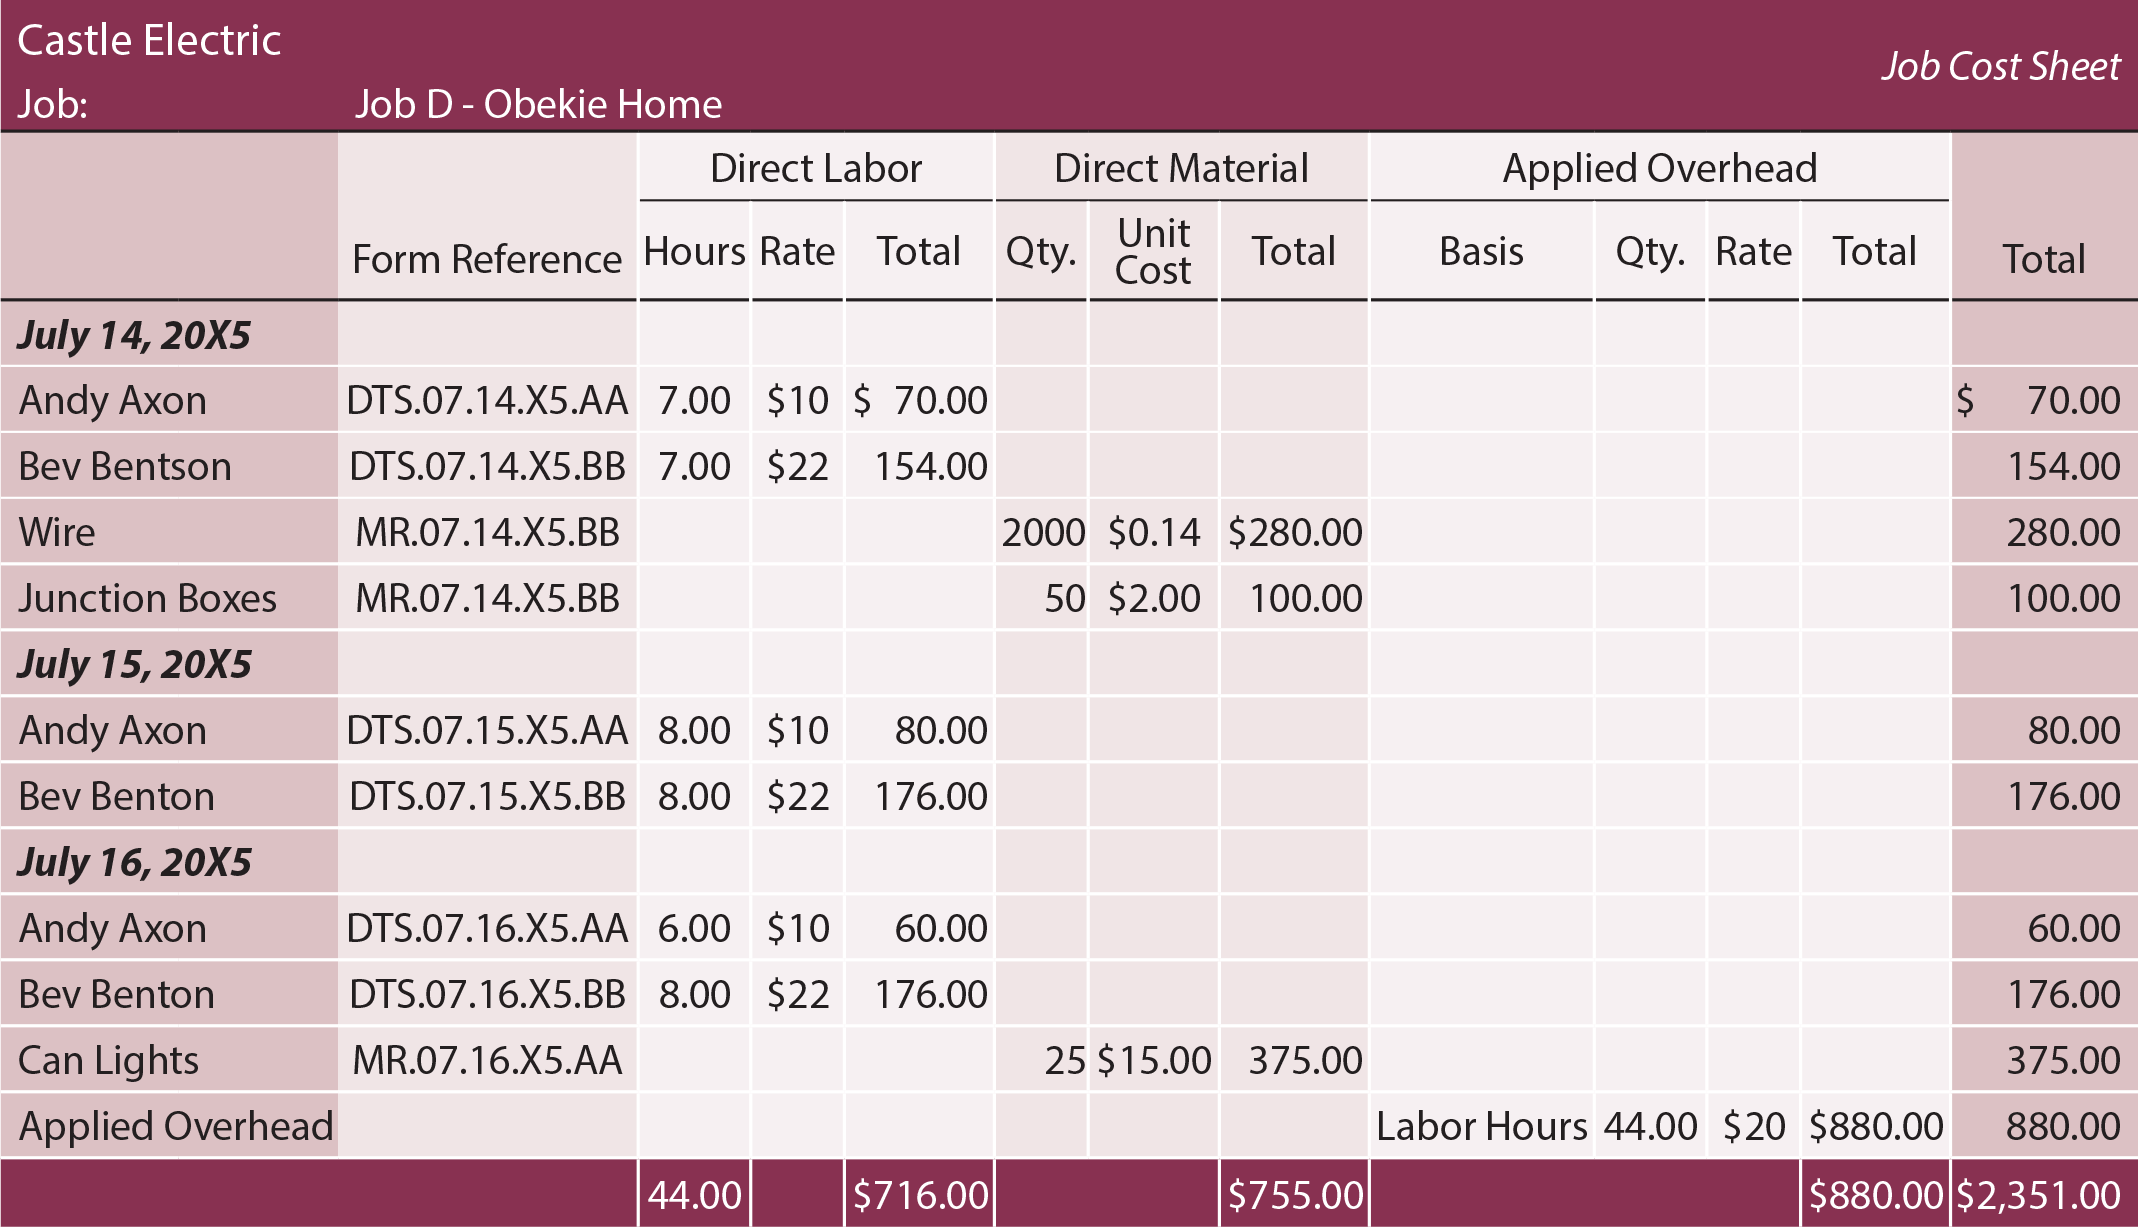 Job Costing Sheet - Job D